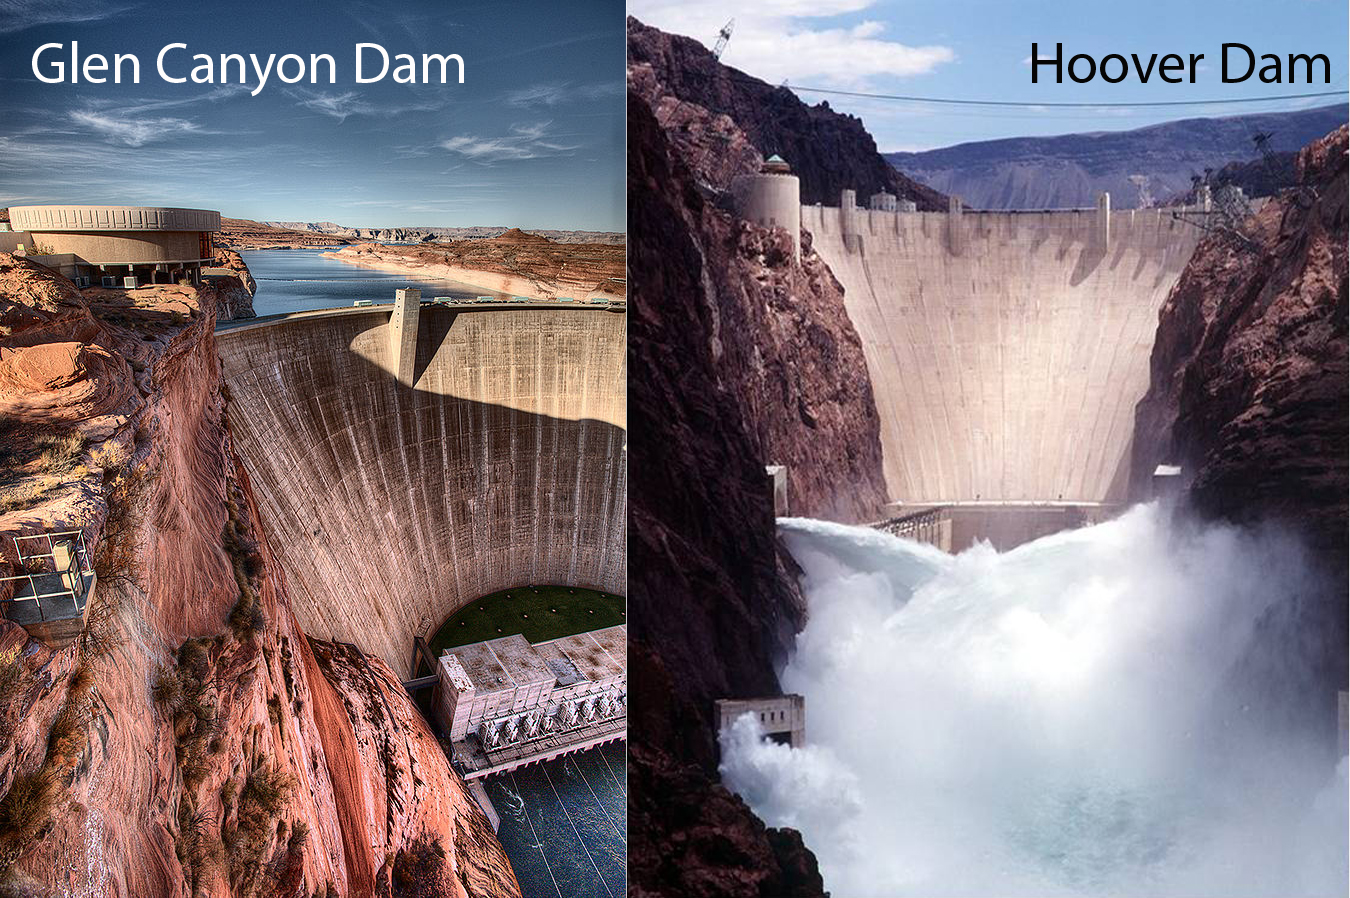 Arizona's major hydroelectric dams